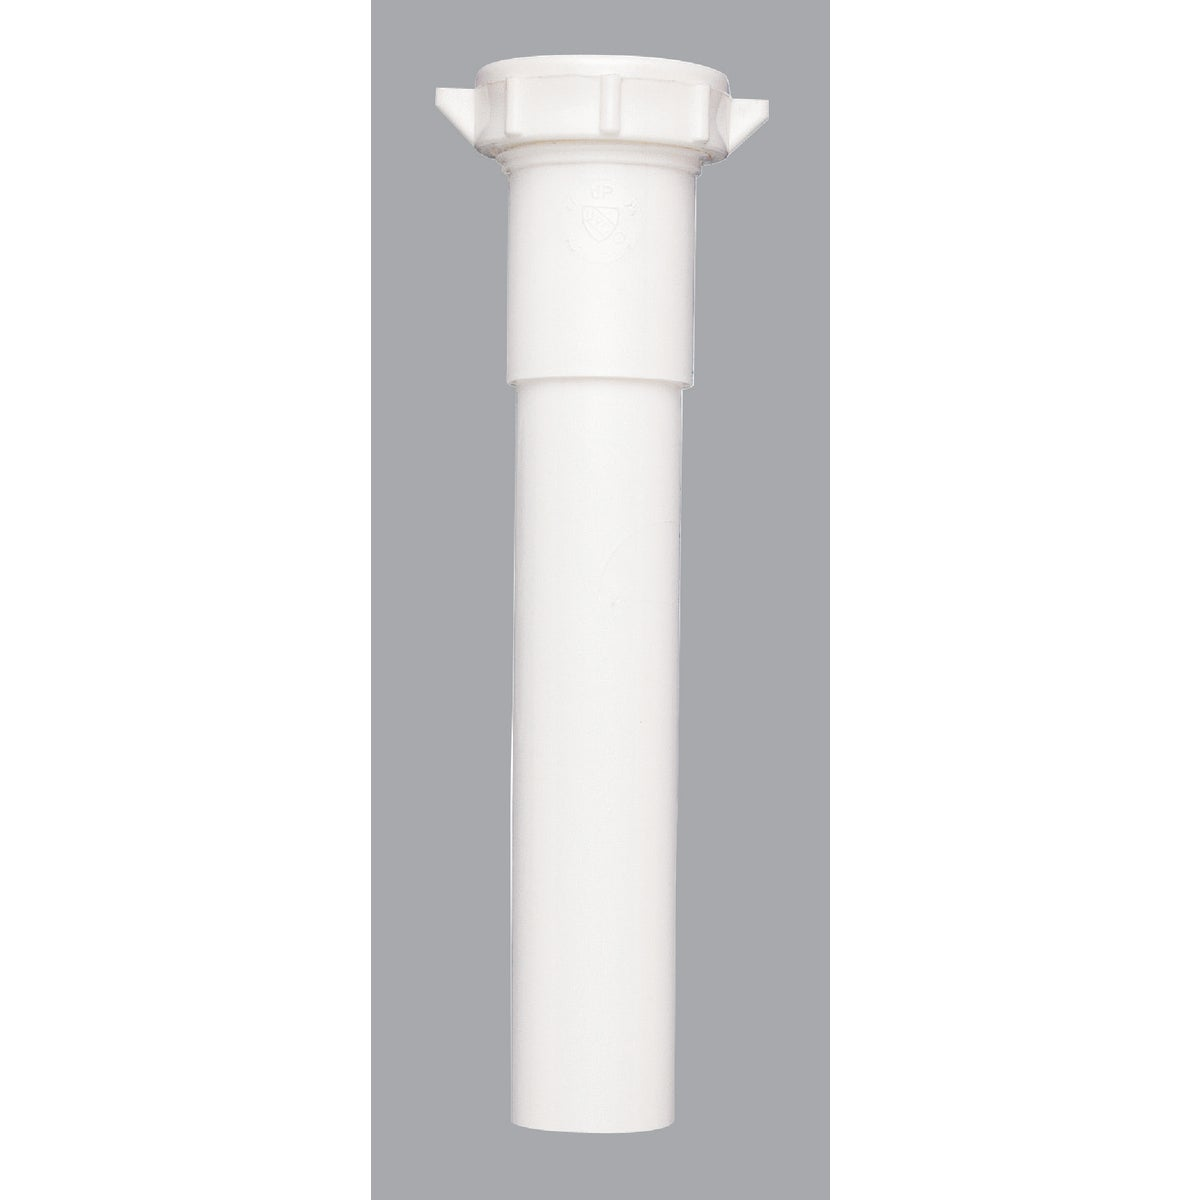 1-1/2X6 WHT S/J EXT TUBE